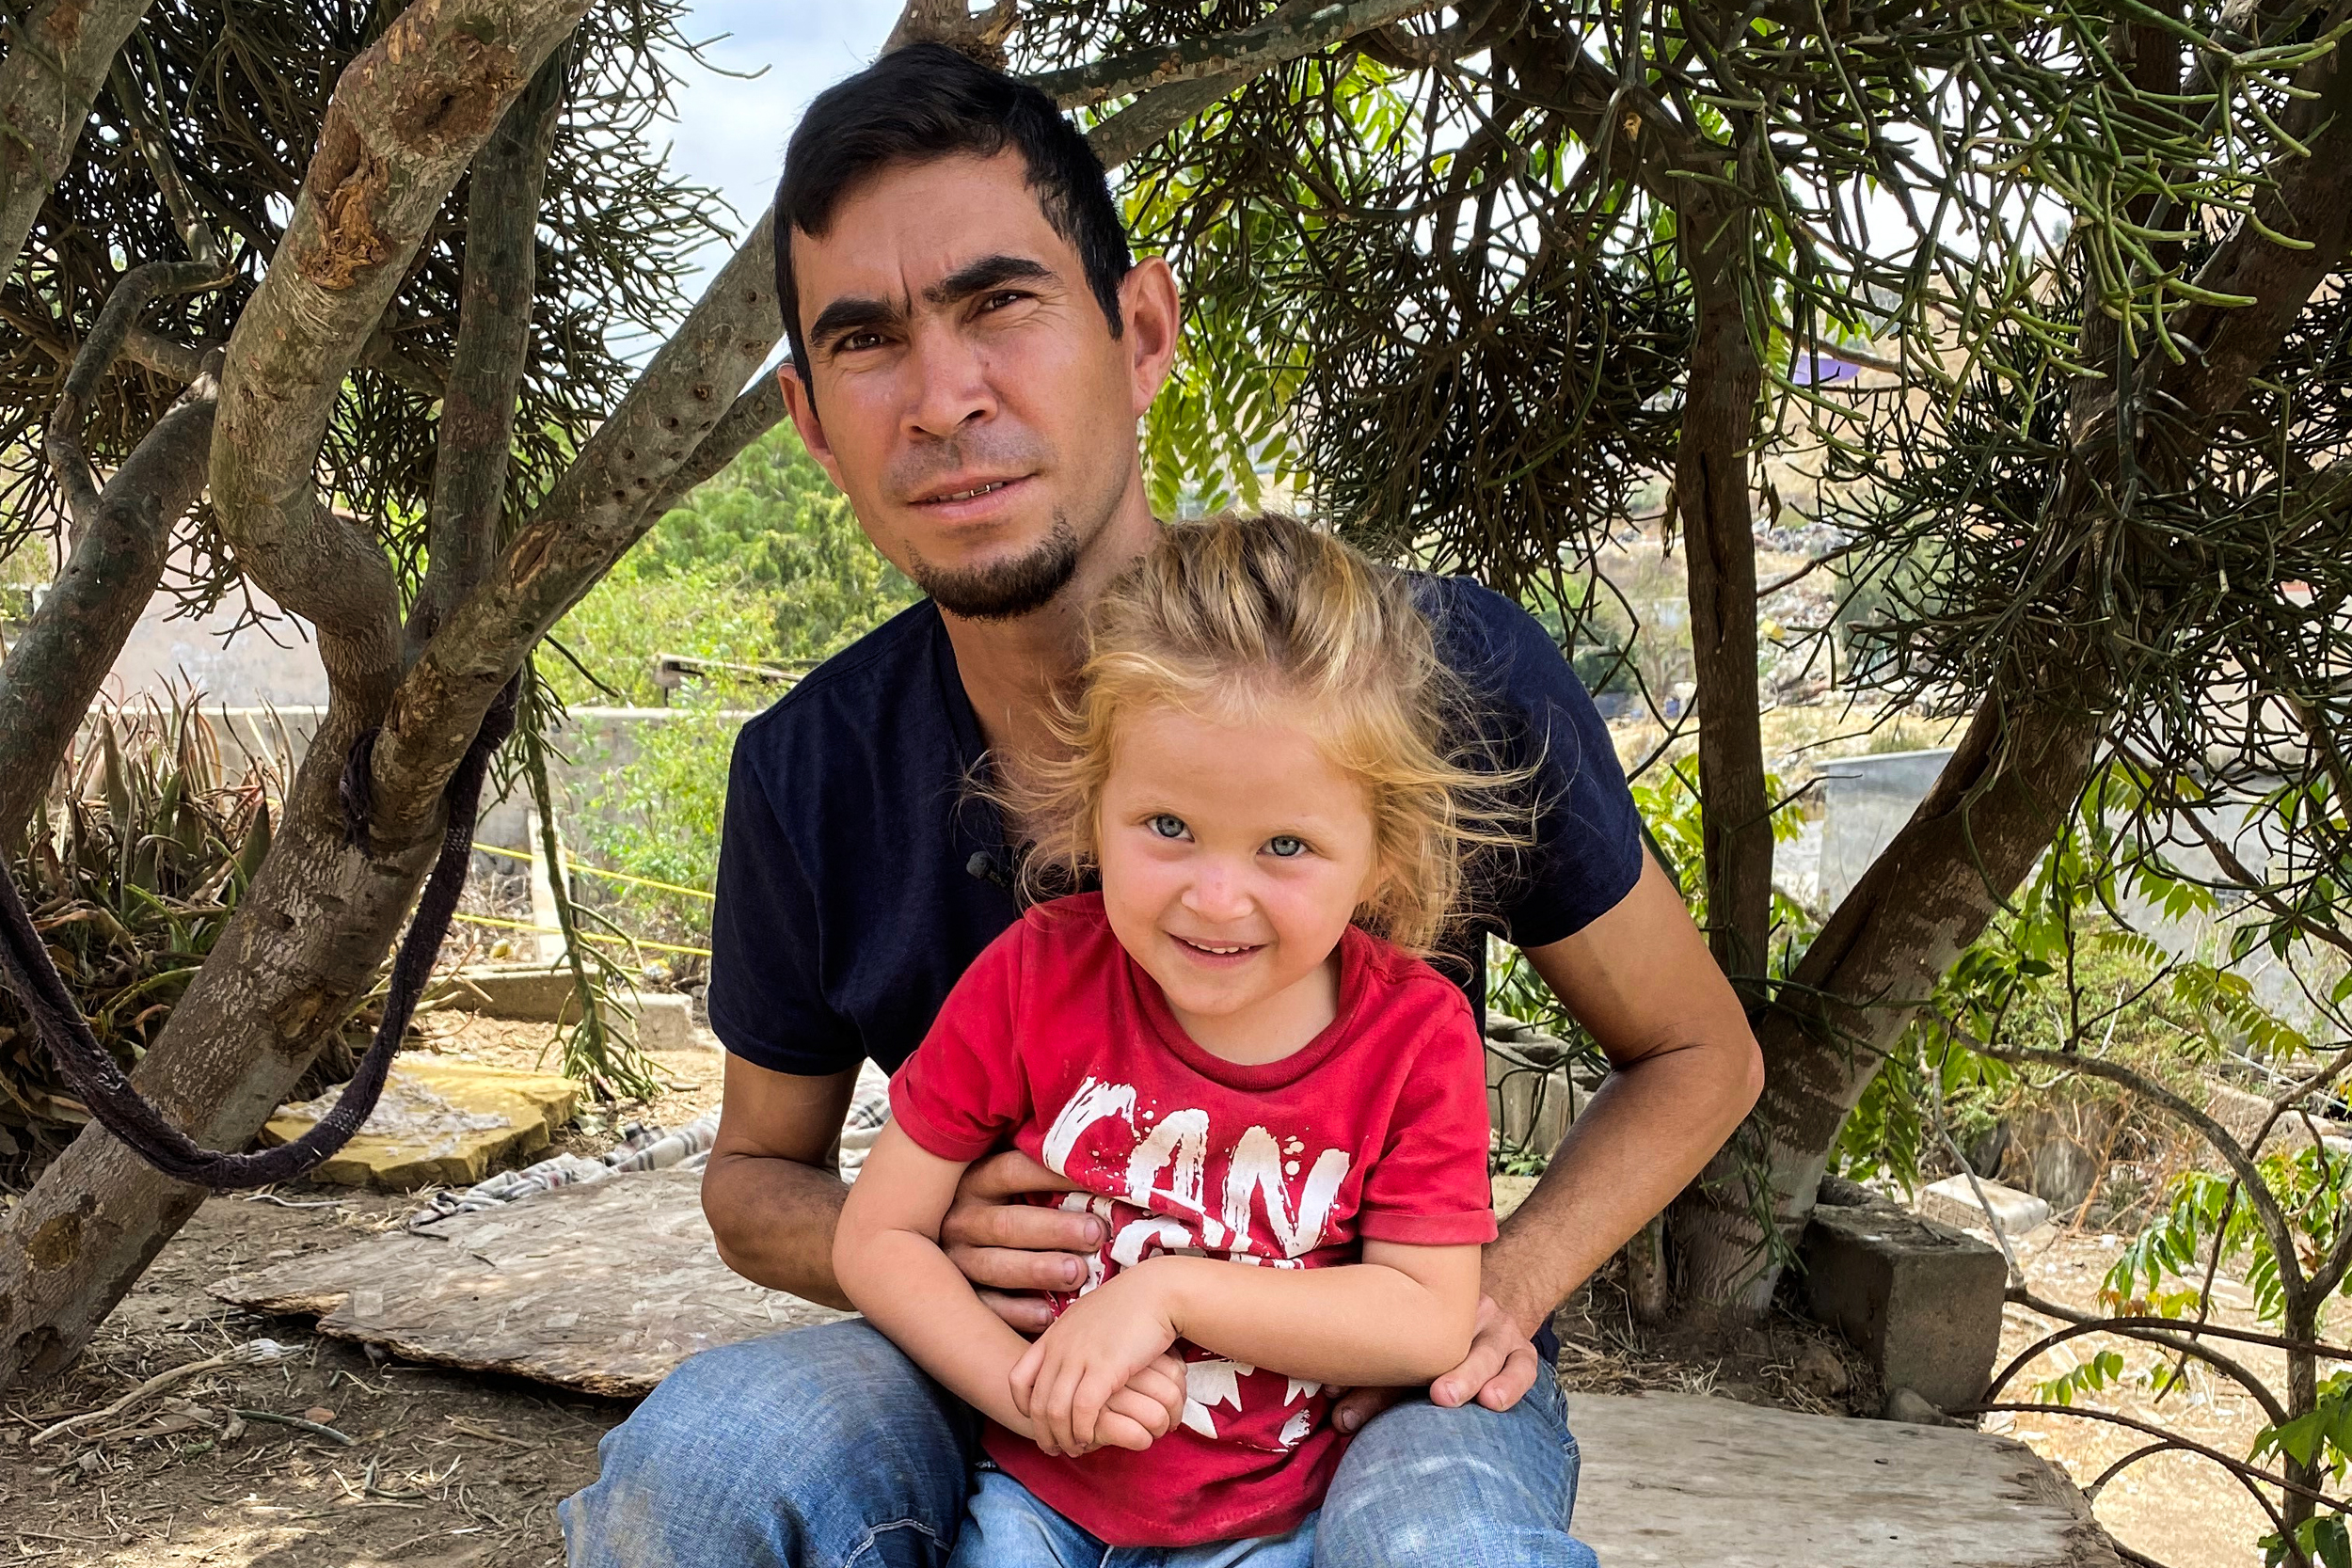 Satanic rituals, forced cannibalism: The kidnappings and extortions of Central American migrants